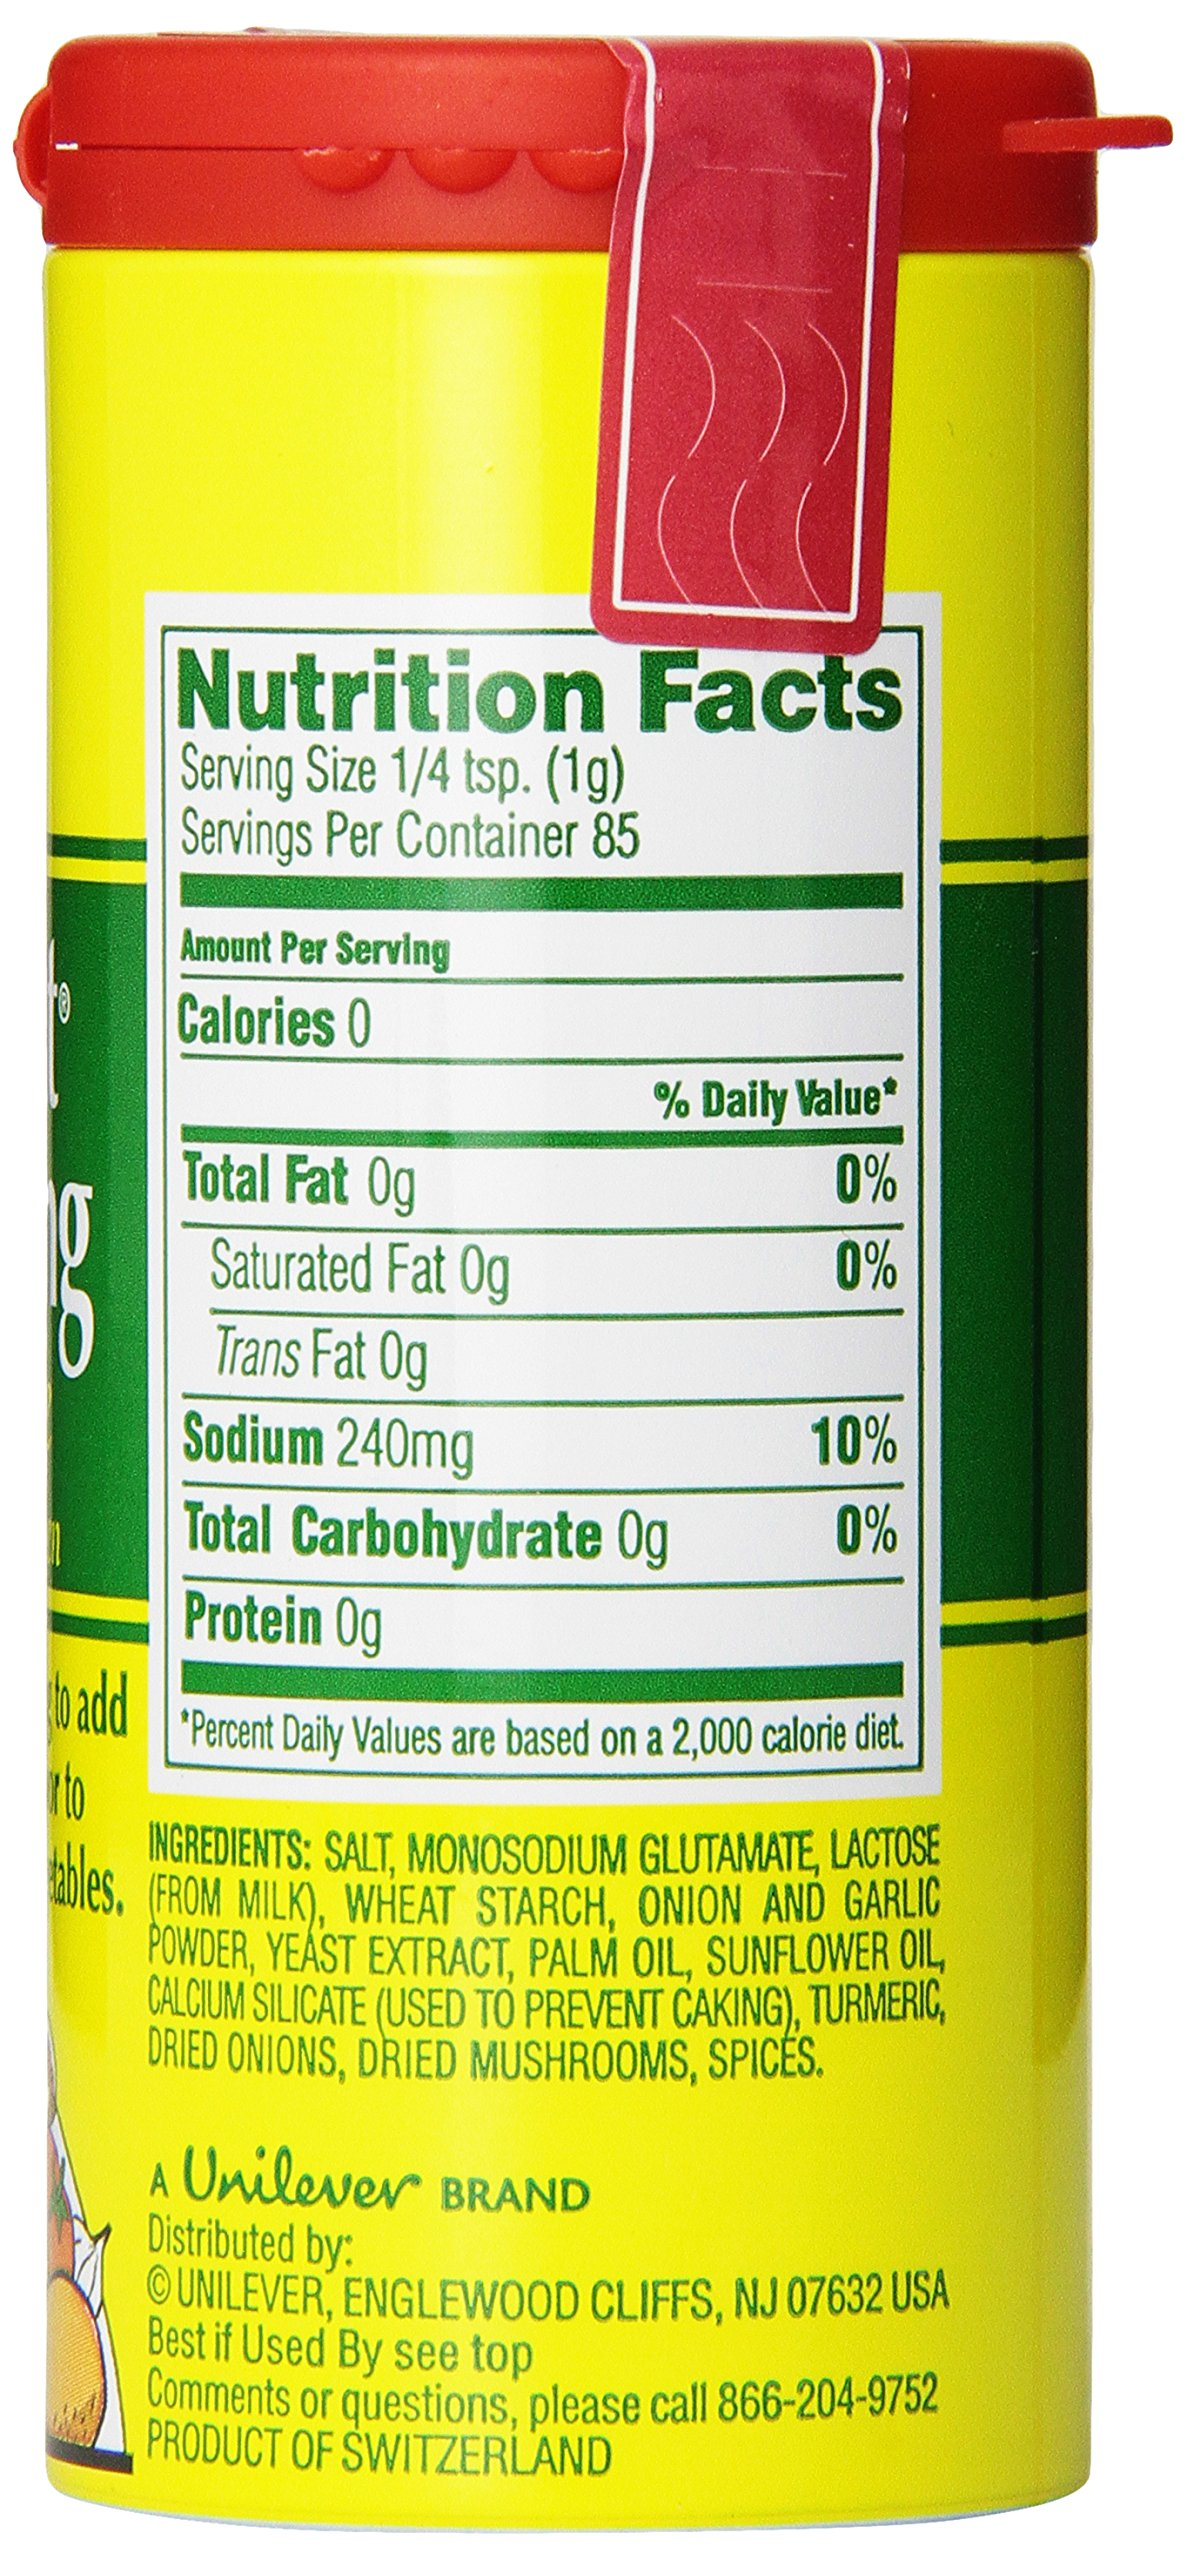 Knorr Aromat Seasoning, 3 Ounce (Pack of 12) by Knorr (Image #5)